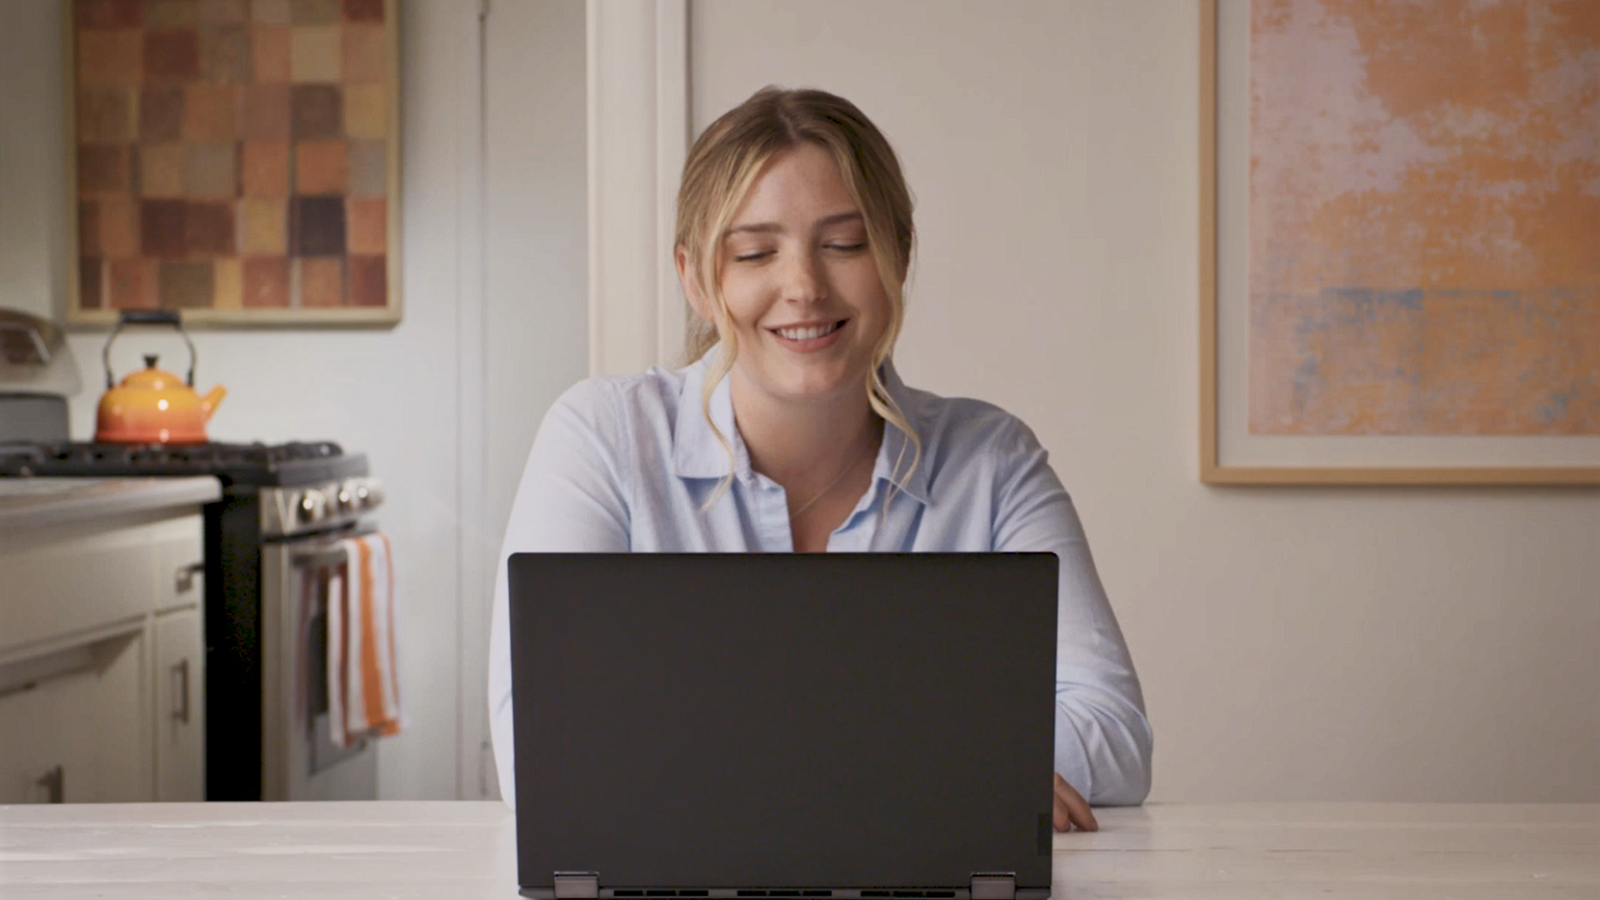 woman smiling while looking at her laptop